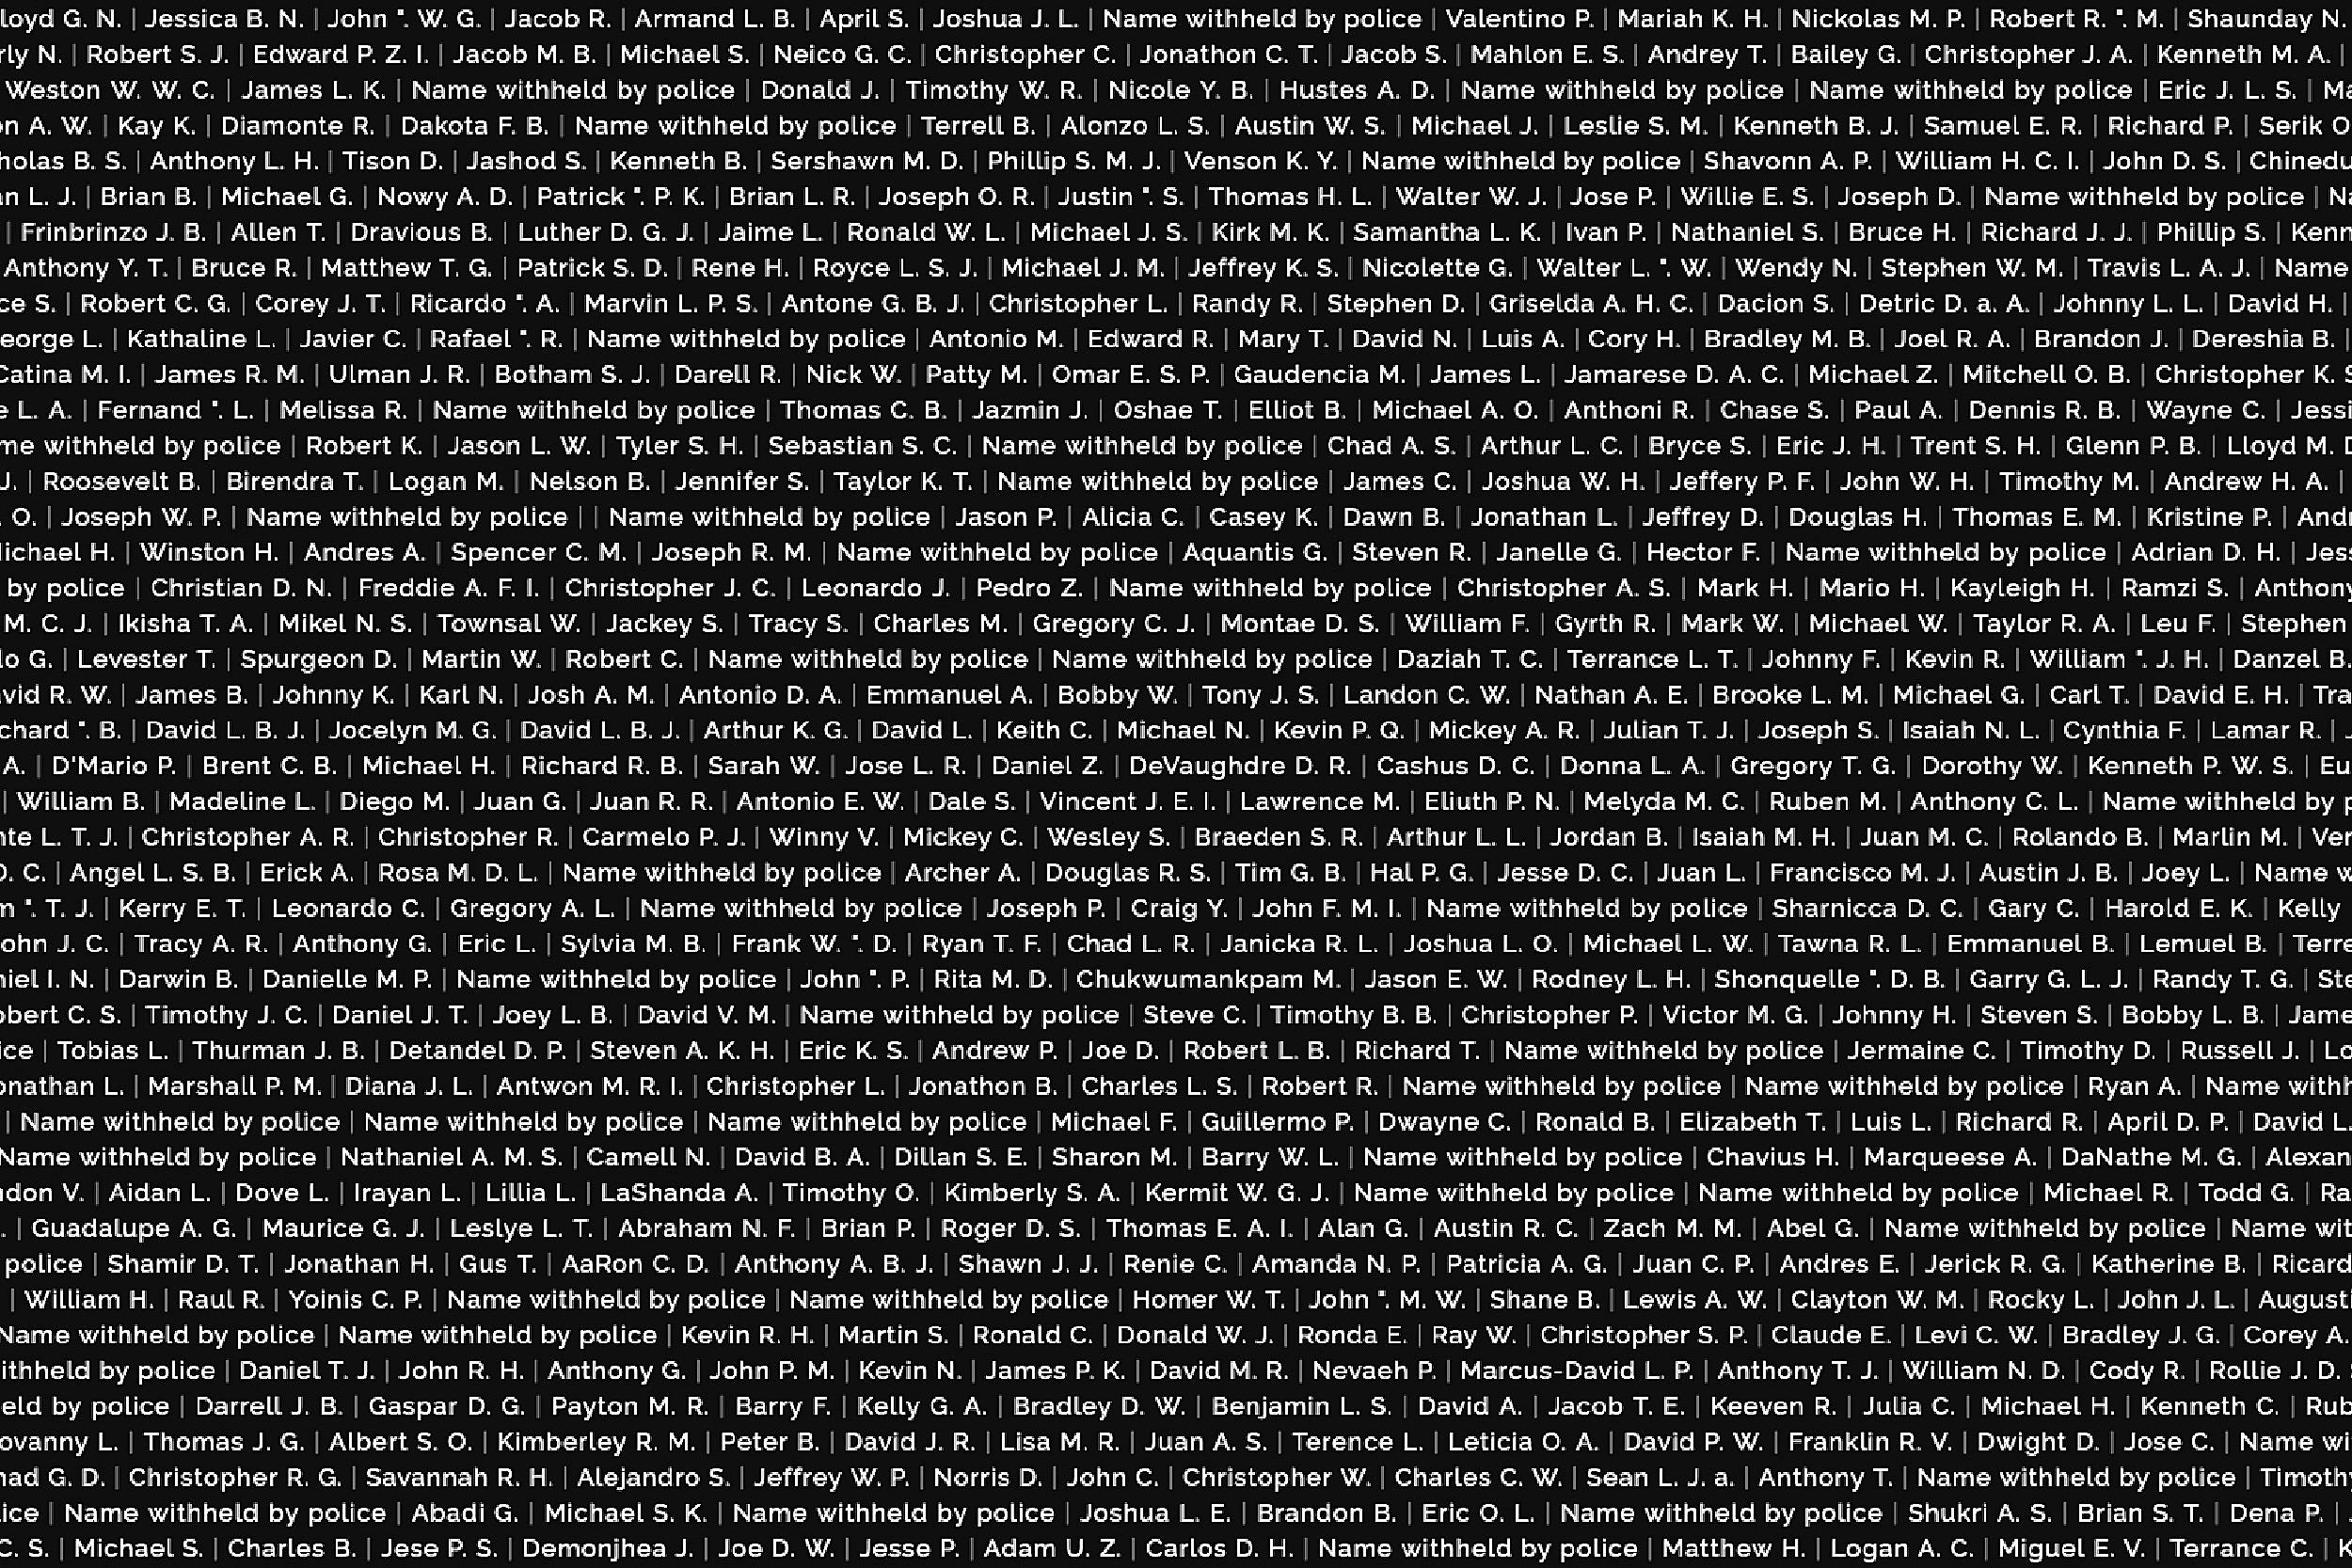 White text of names against black background.